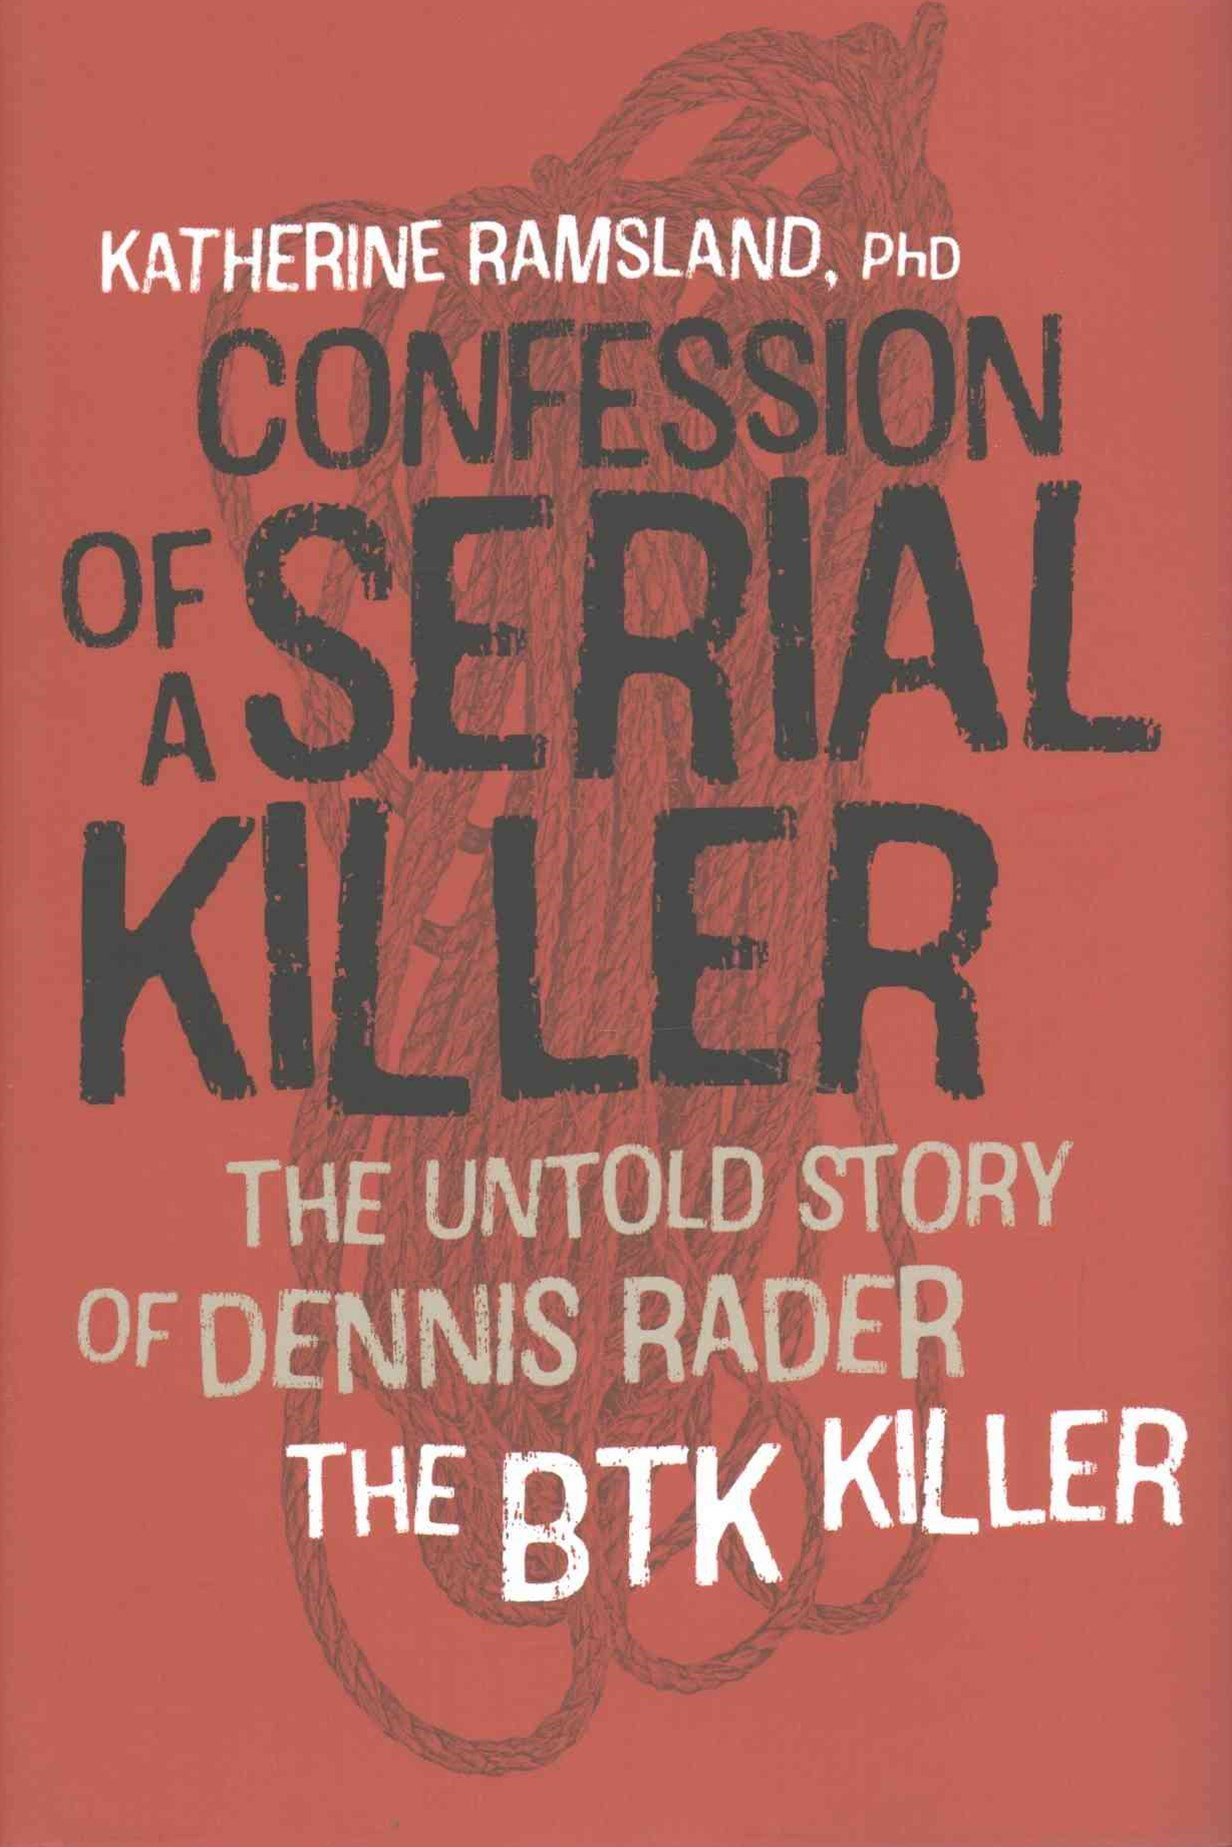 Confession of a Serial Killer